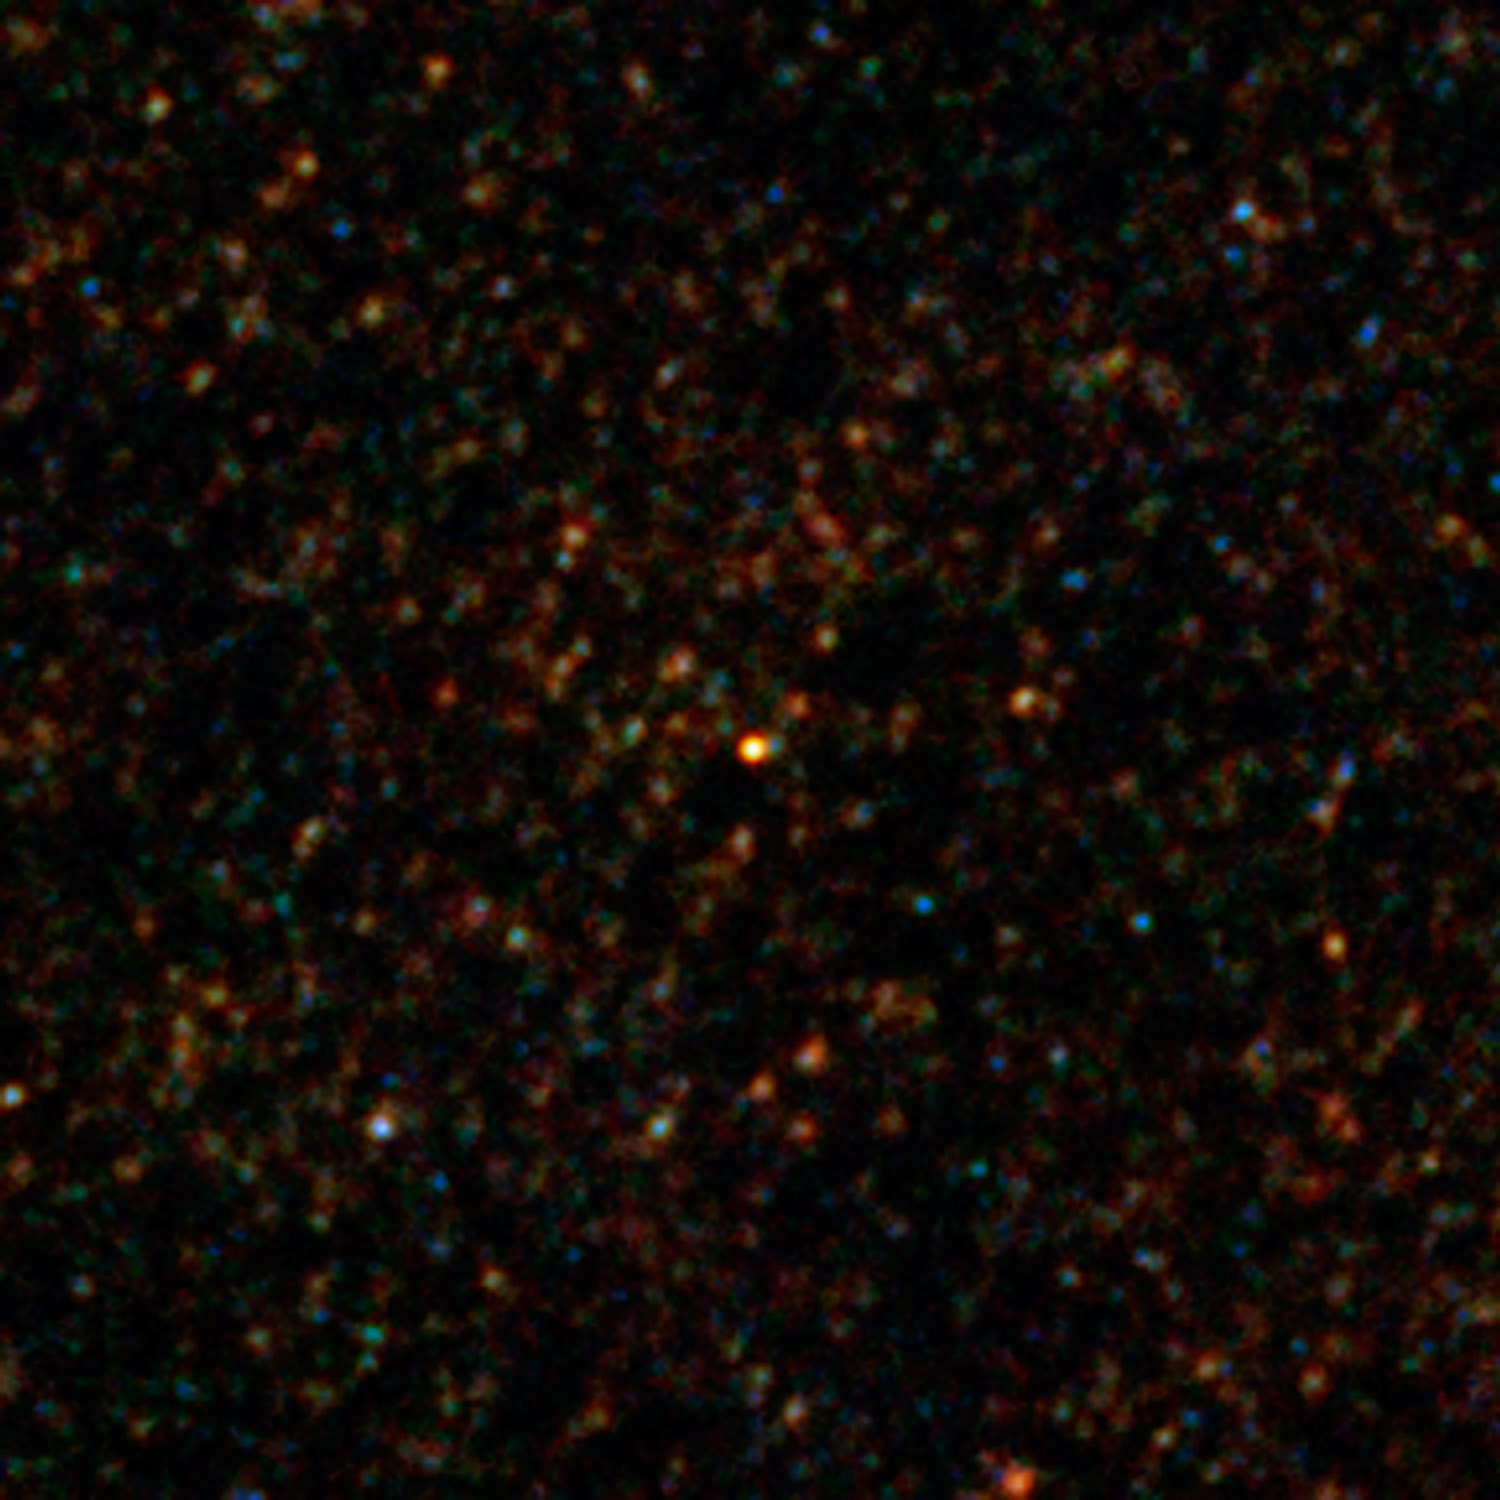 Herschel's view of the bright source HXMM01. Credit: ESA/NASA/JPL-Caltech/UC Irvine